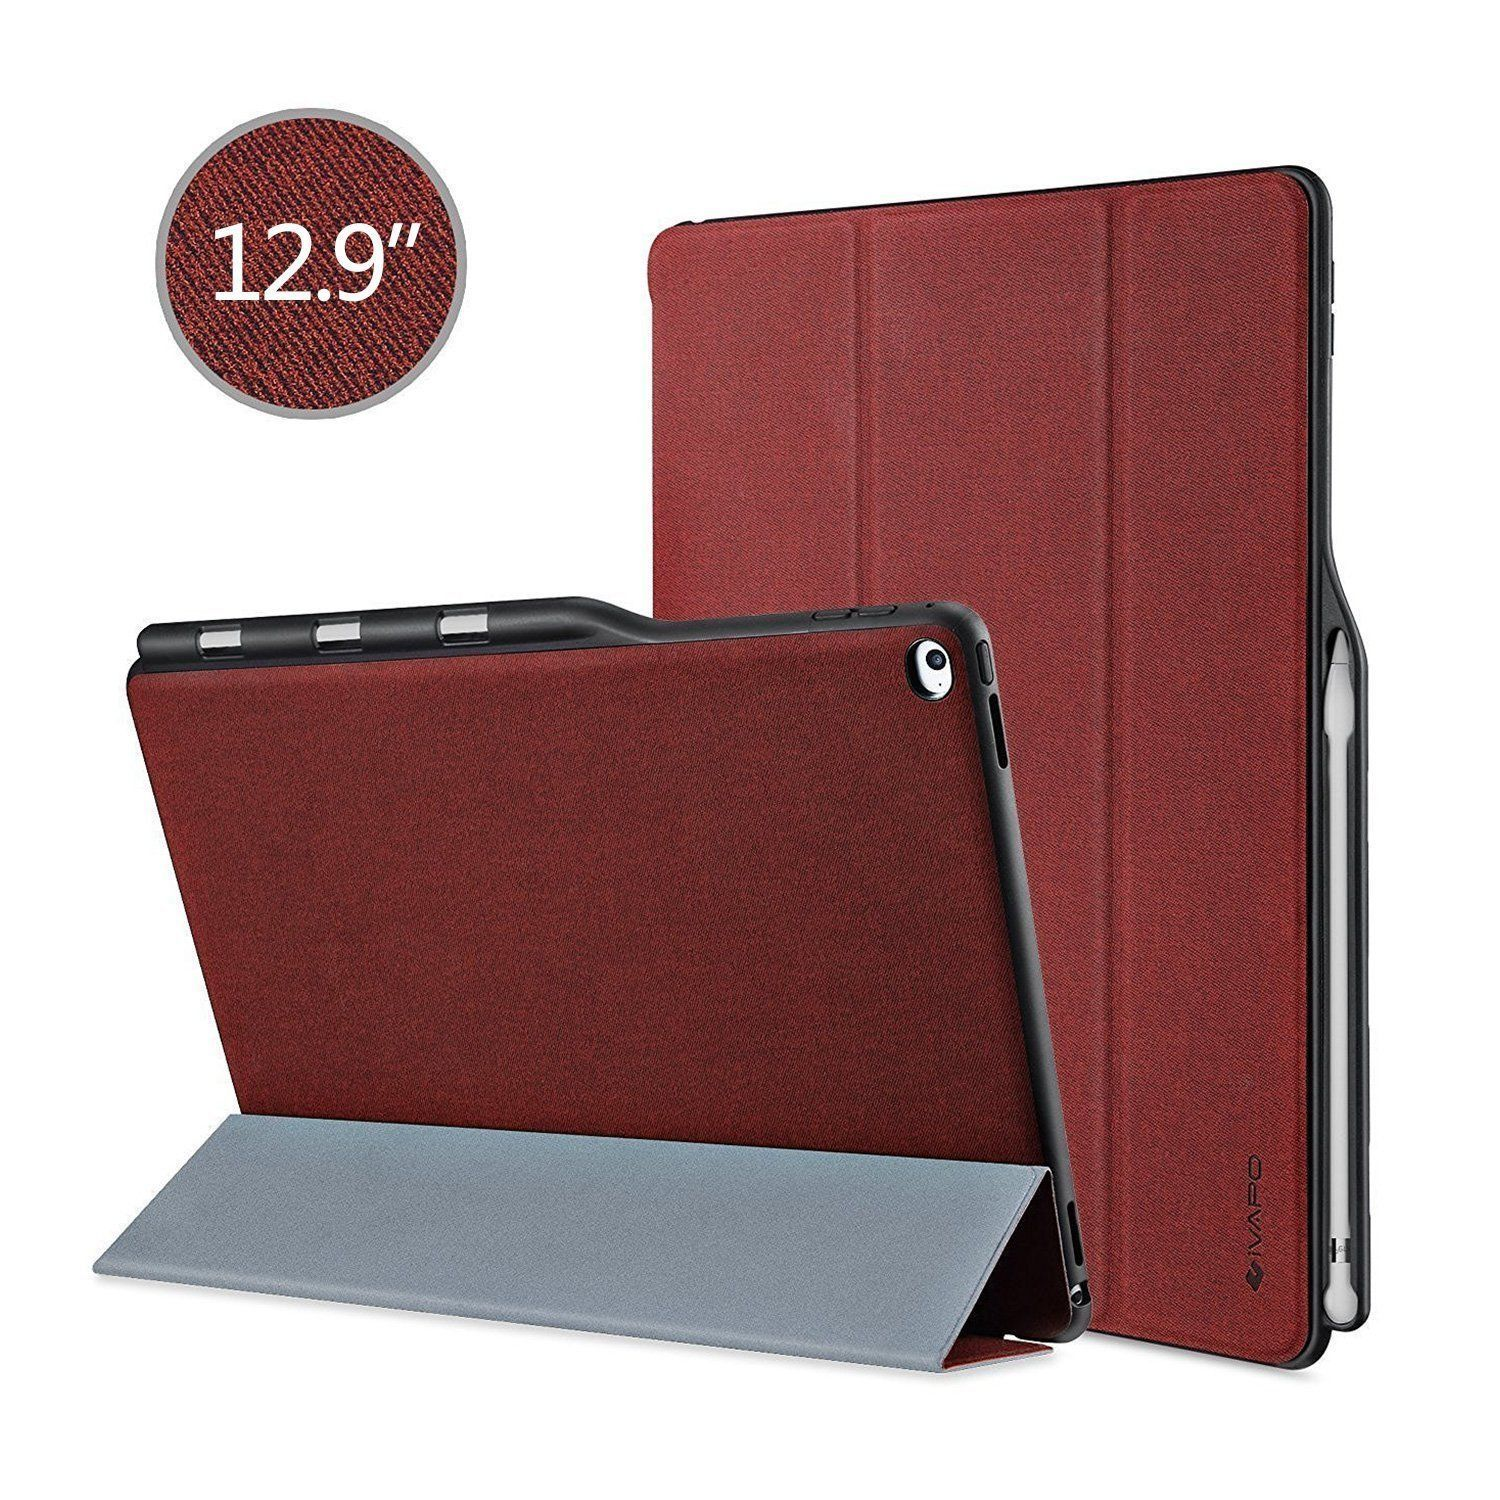 Ipad Pro 9.7 Case With Pencil Holder Alluring Burgundy Red New Cell Phone Case Holder Accessories For Apple Ipad Design Decoration